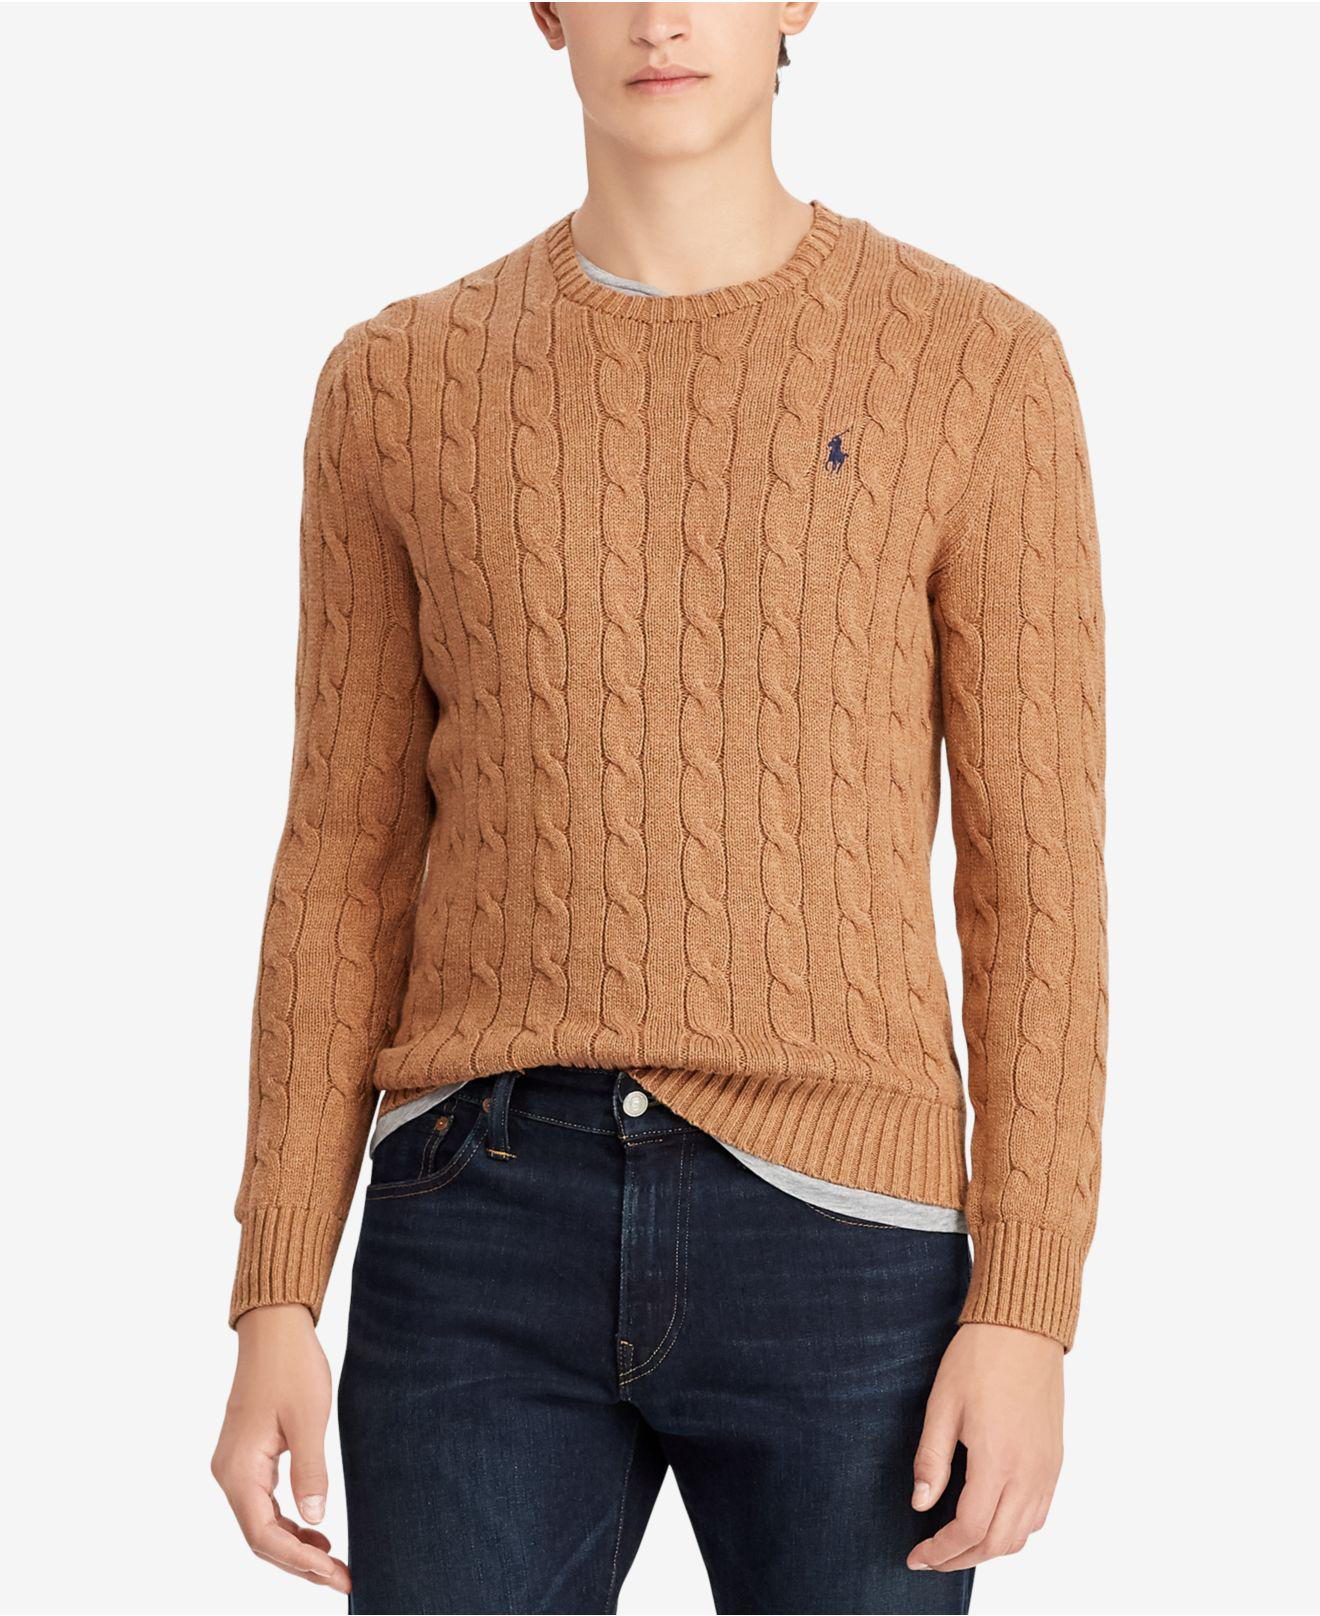 0194be0ea Lyst - Polo Ralph Lauren Brown Ribbed Knit Jumper in Brown for Men ...